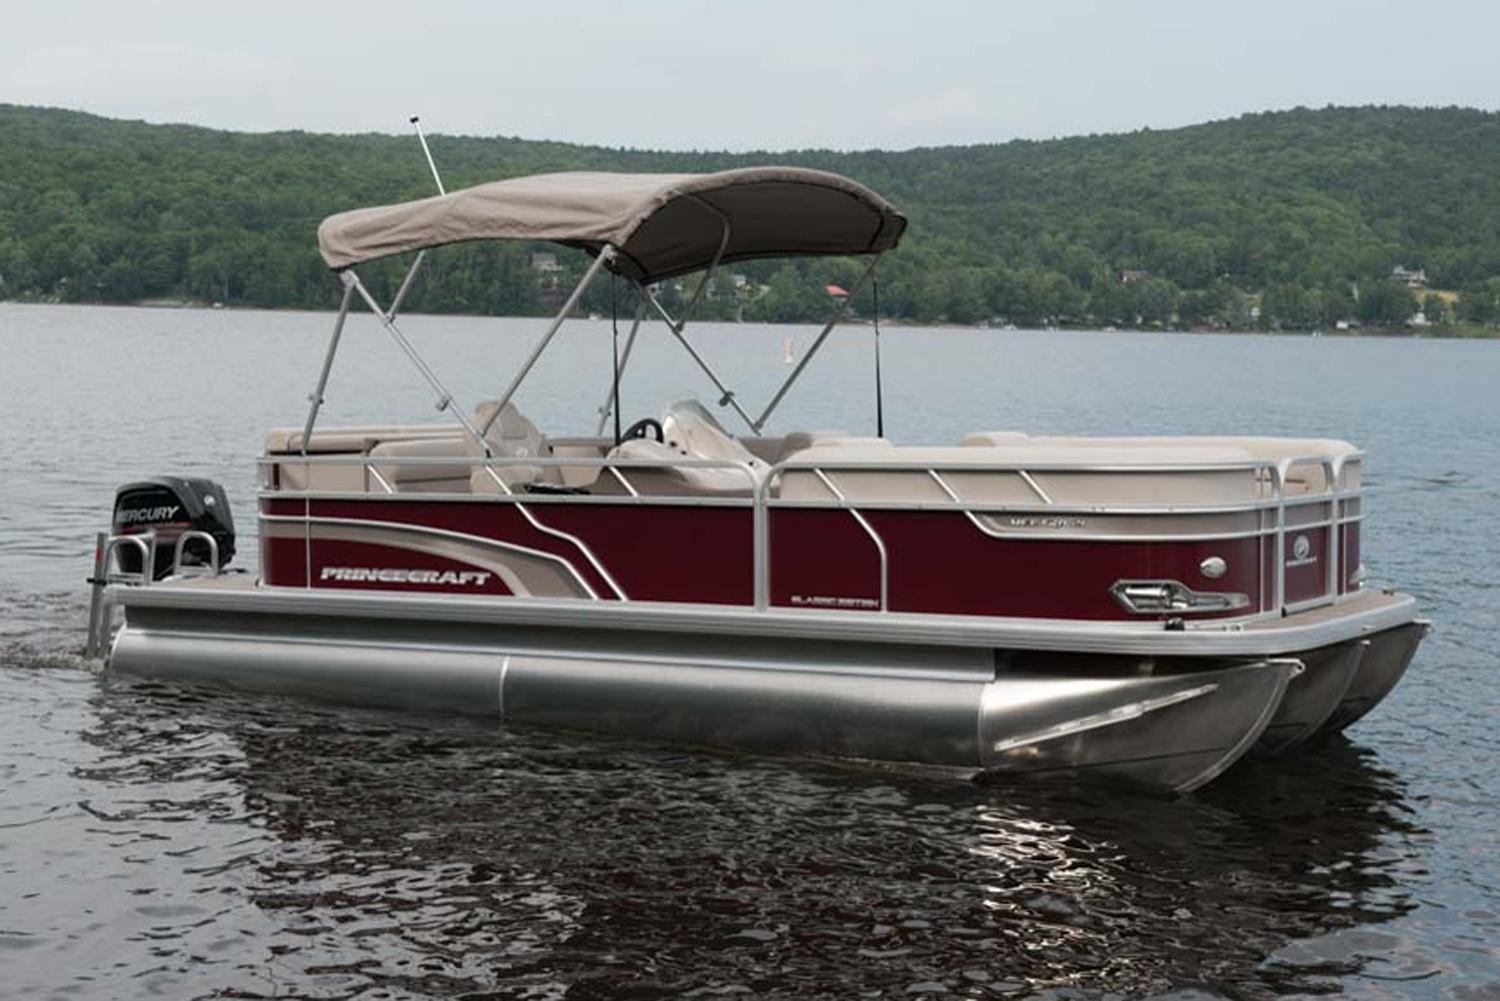 2018 Princecraft Sportfisher 23-2S in Center Ossipee, New Hampshire